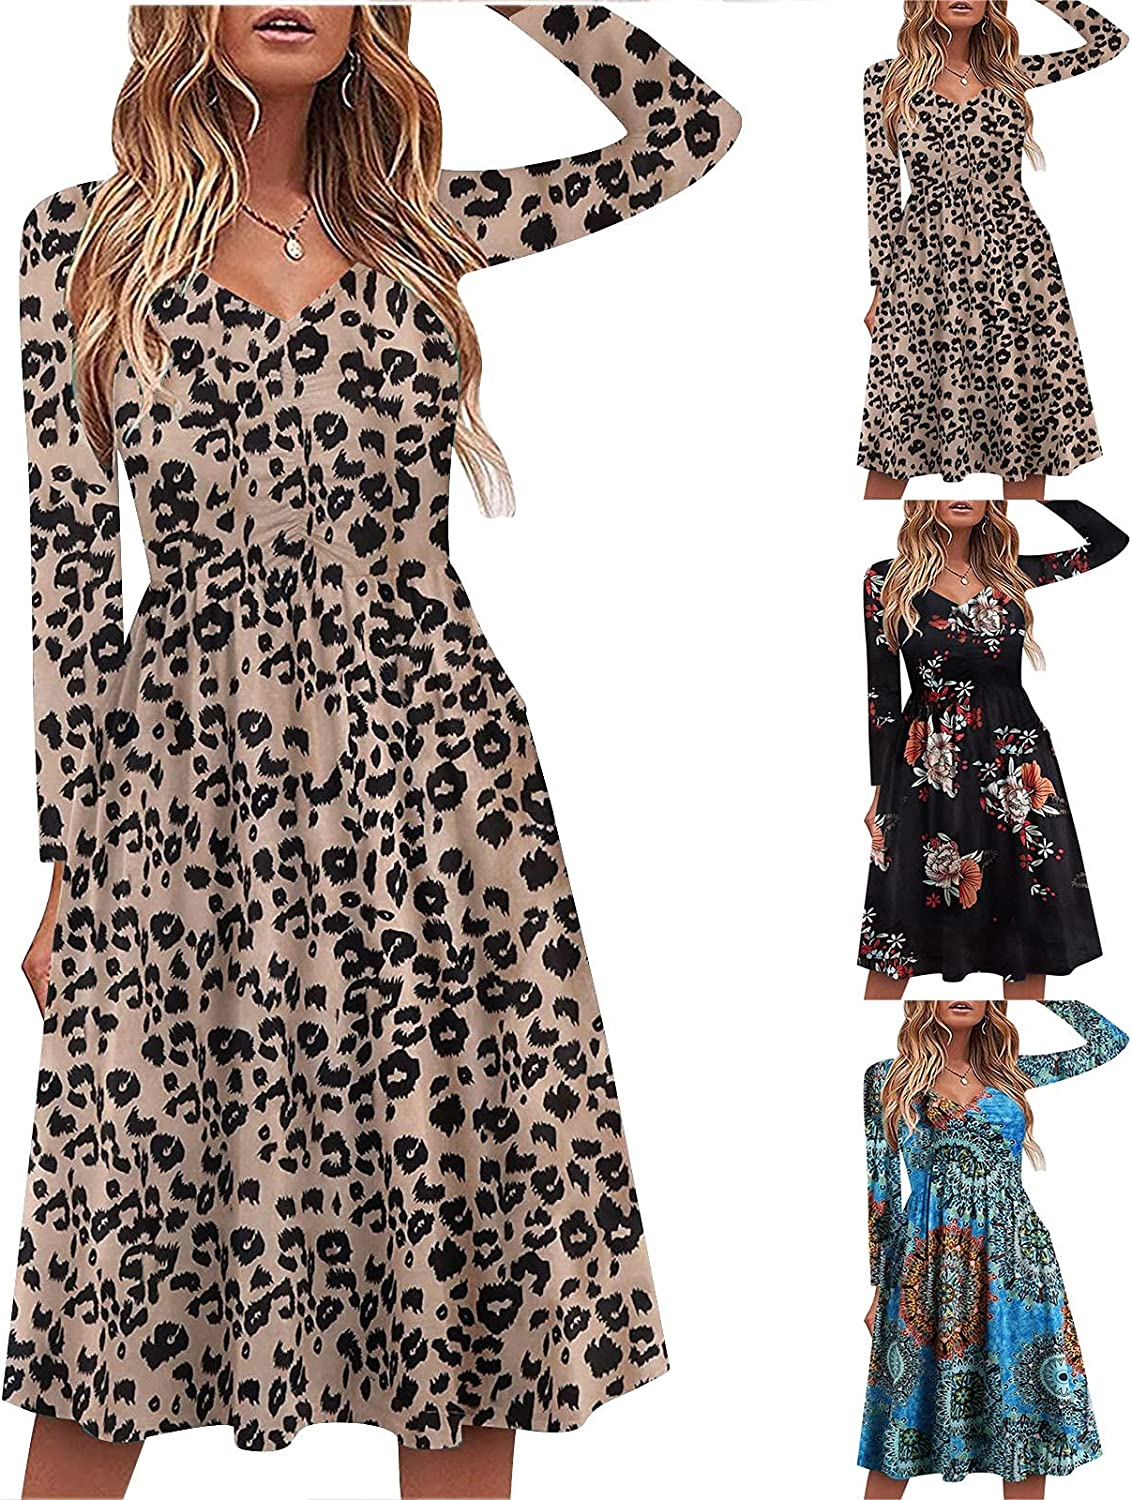 Womens Dresses Chiffon Sundress Casual Two Piece Outfit Dress Solid Cardigan Floral Print Sleeveless Maxi Long Skirt